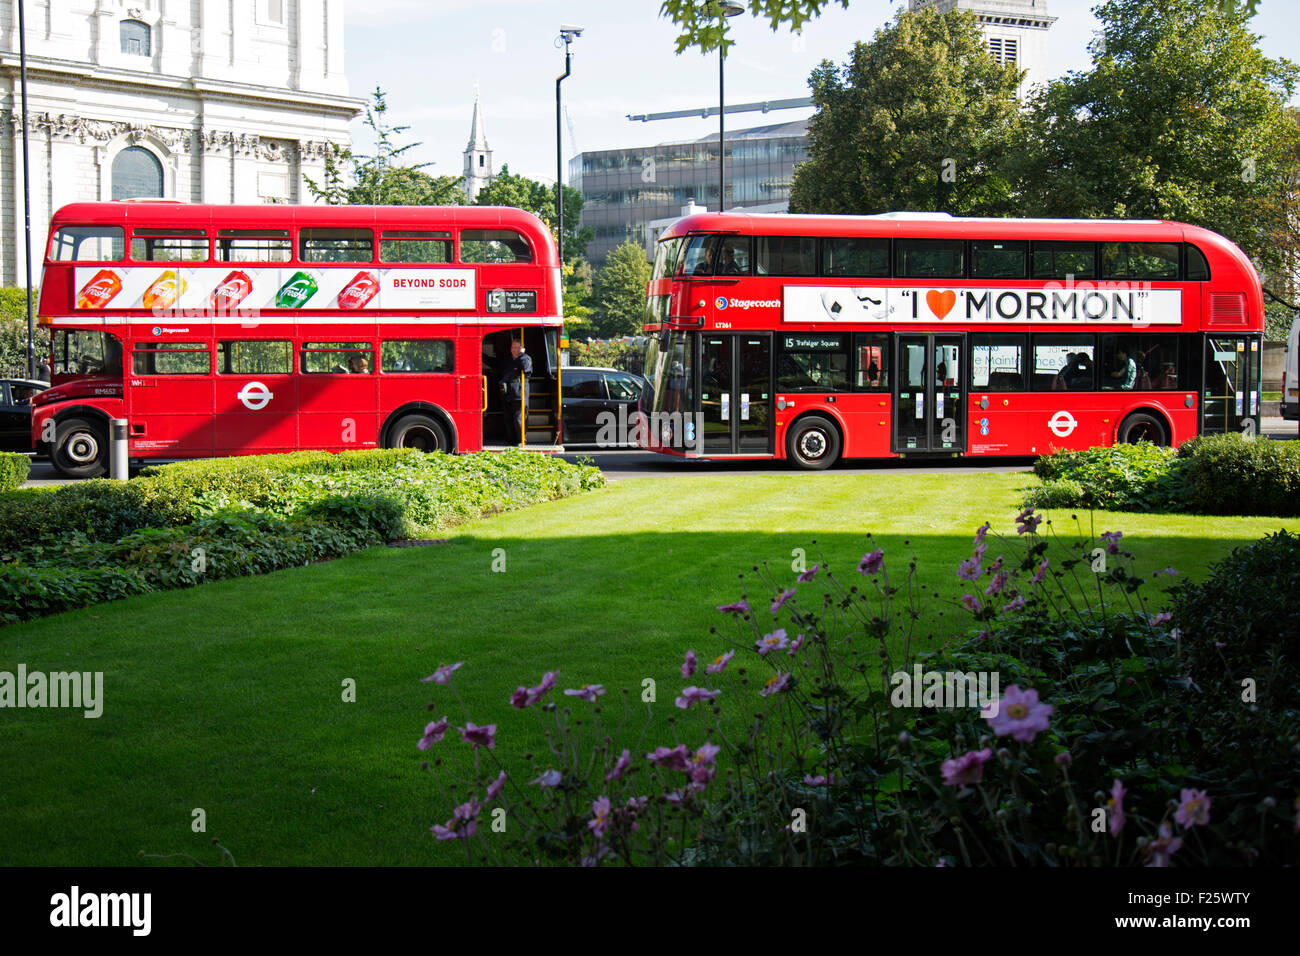 New and Old 'Routemaster' buses in London. - Stock Image